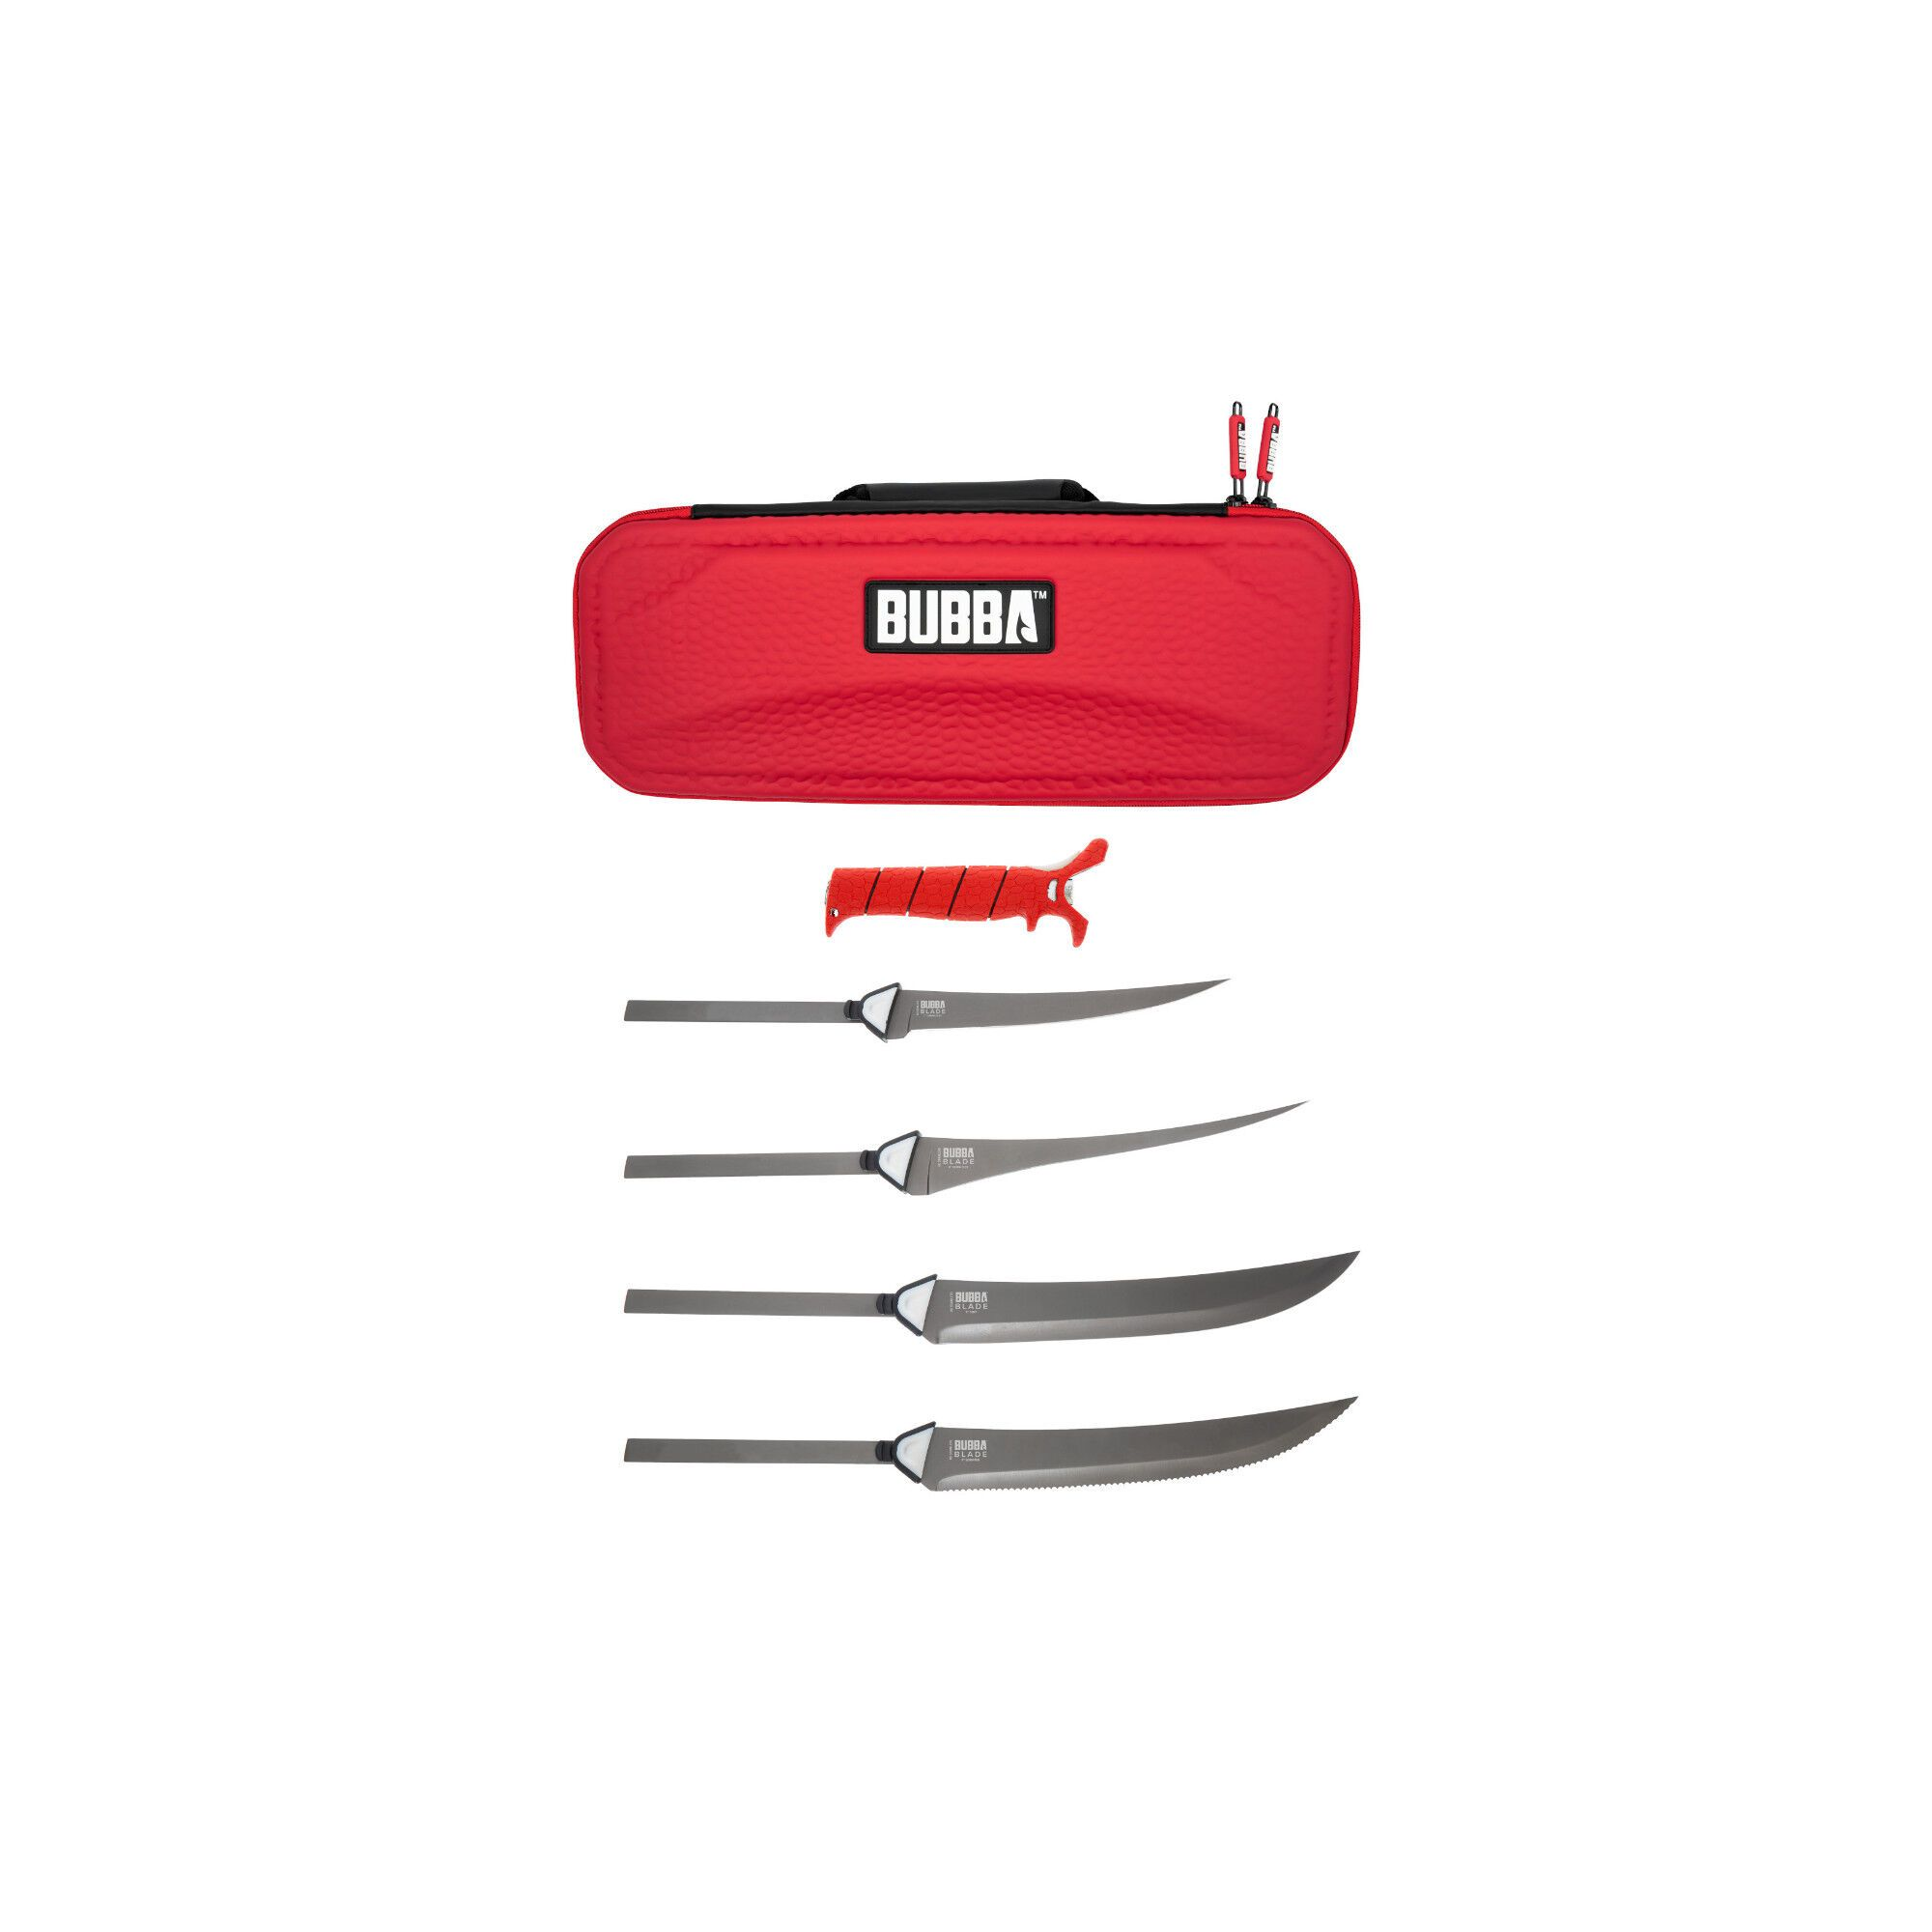 Bubba Multi-Flex Interchangeable Blades Tools Bubba Blade